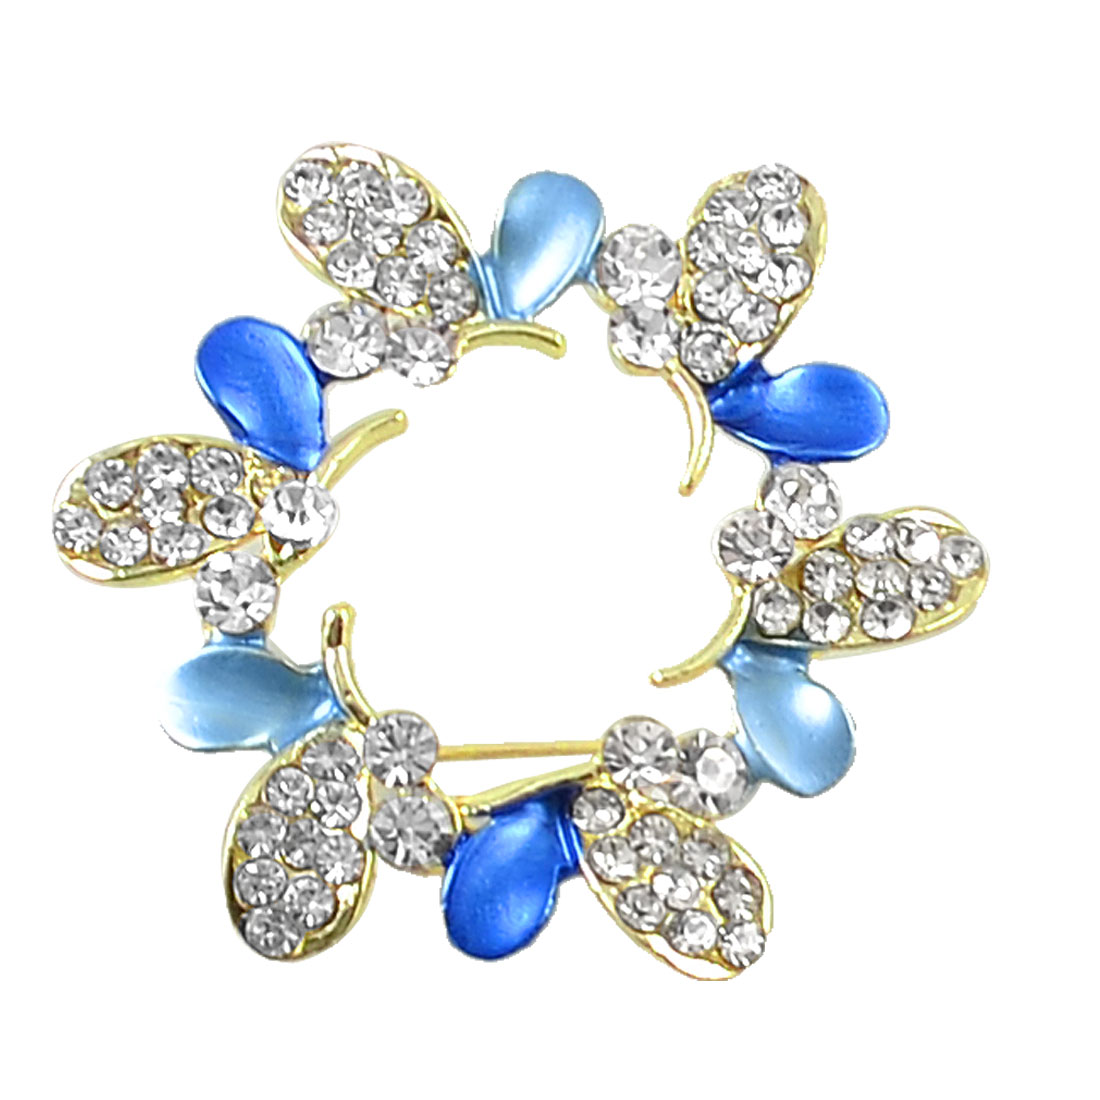 Blue Leaves Rhinestone Accent Flower Pin Brooch Breastpin Gift Gold Tone